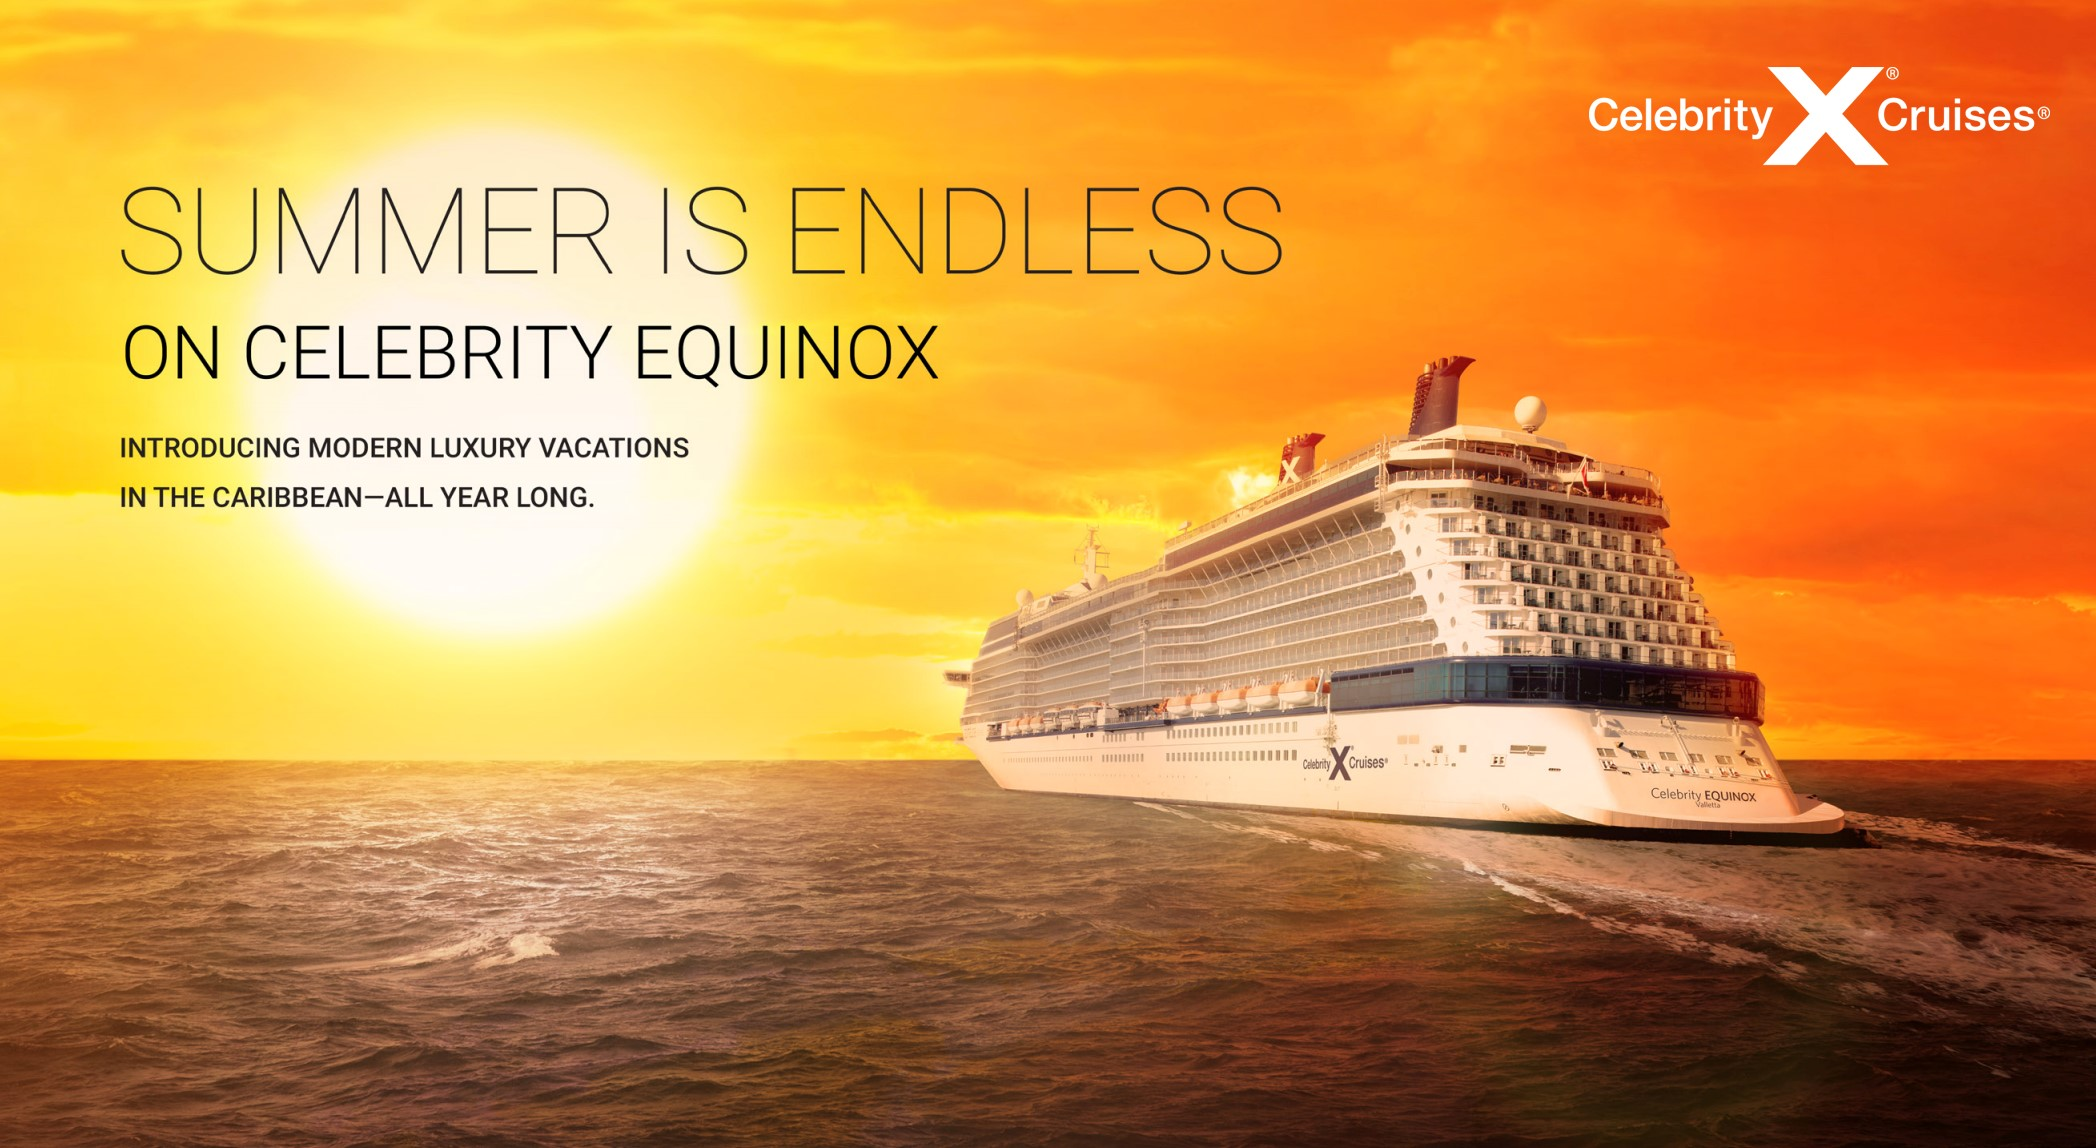 Celebrity - Summer is Endless Sale & Year Round Caribbean Luxury Vacations